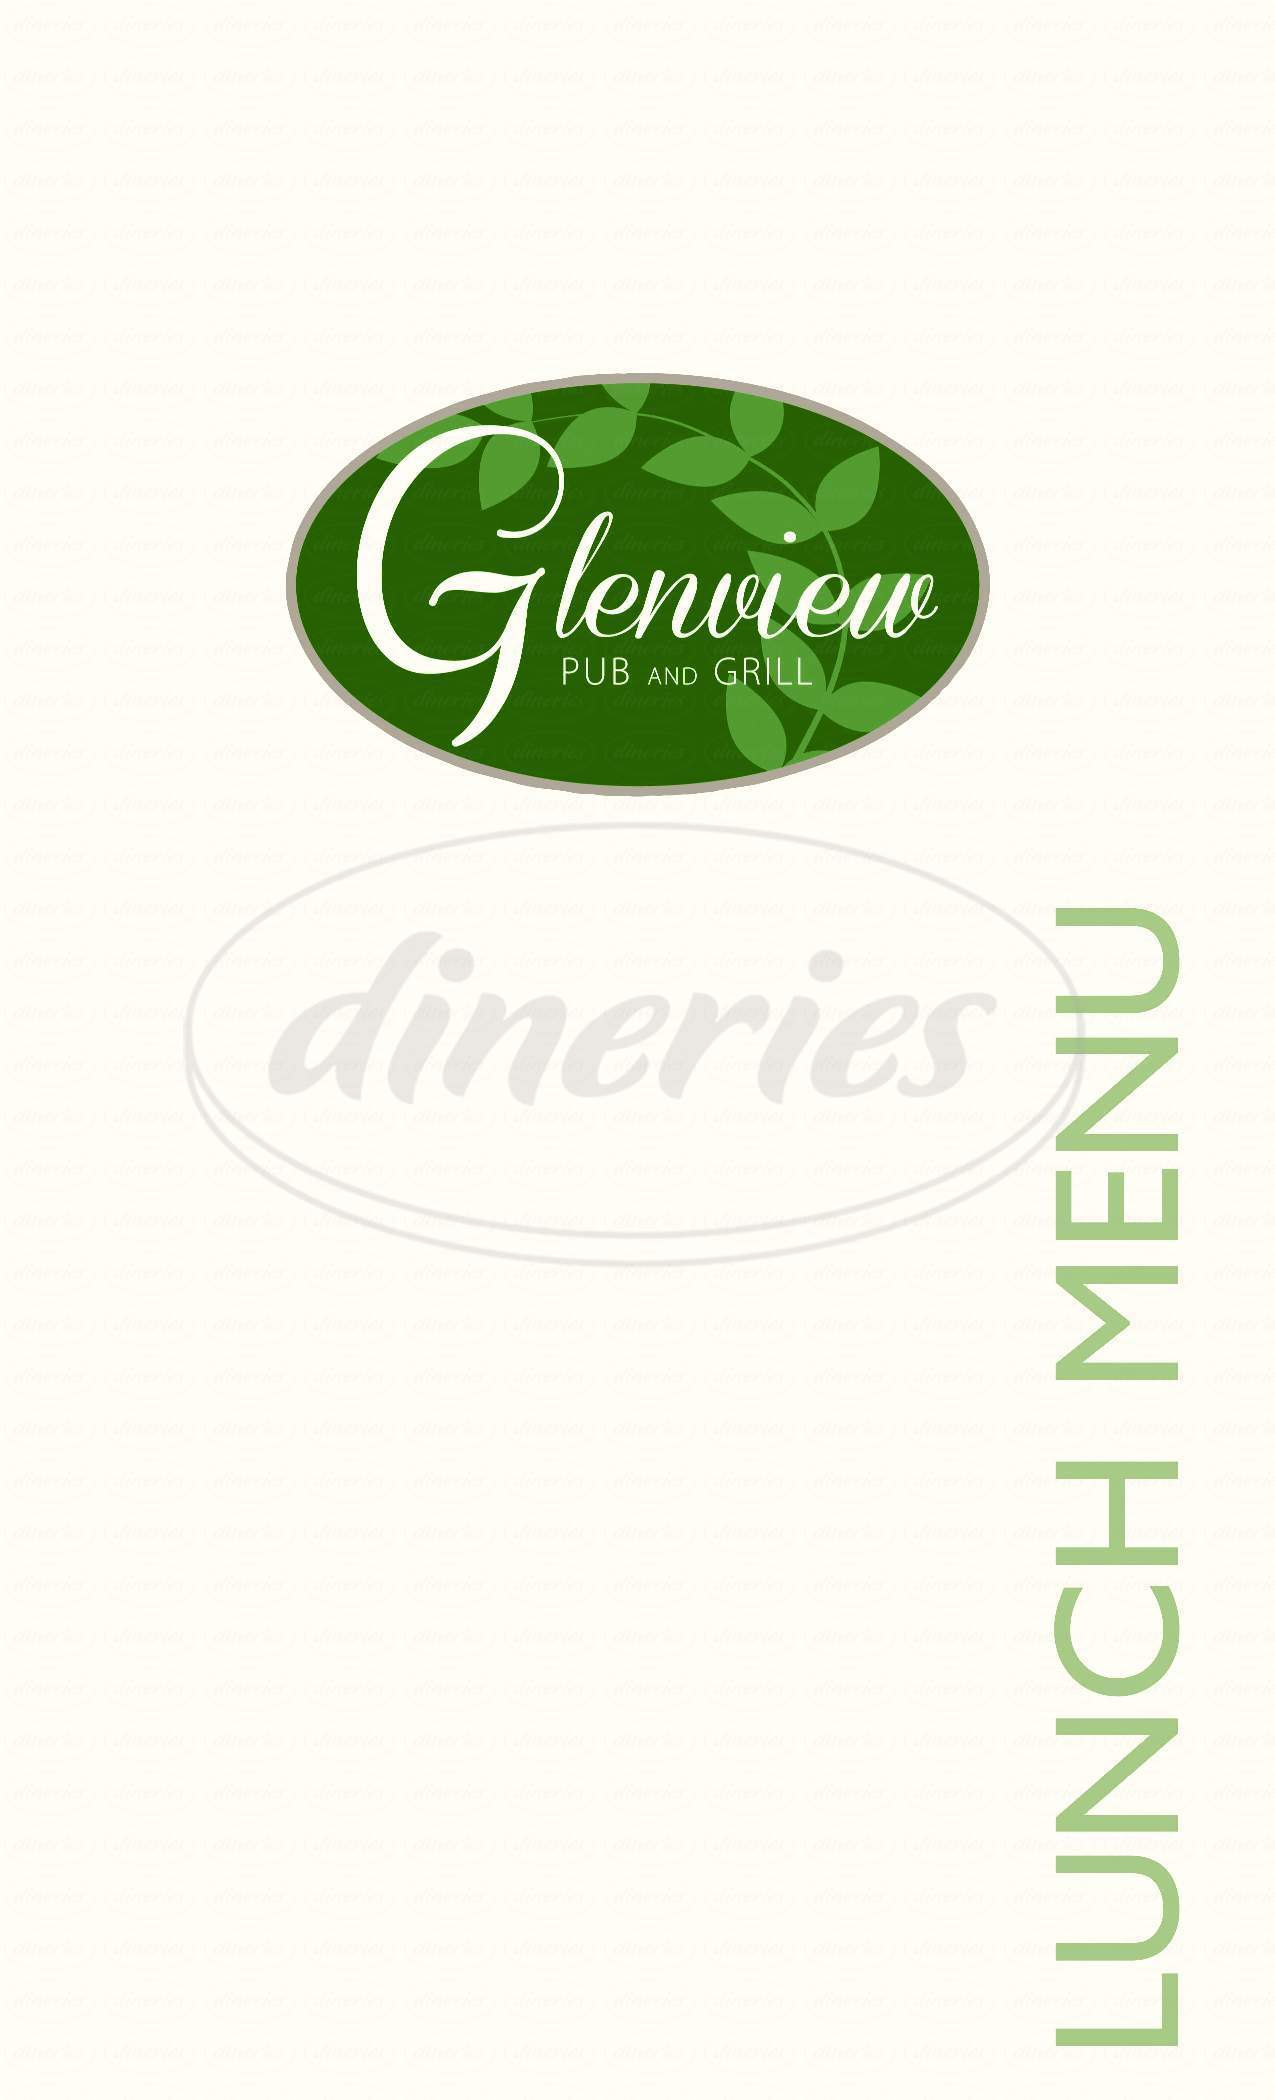 Big menu for Glenview Pub & Grill, North Chelmsford